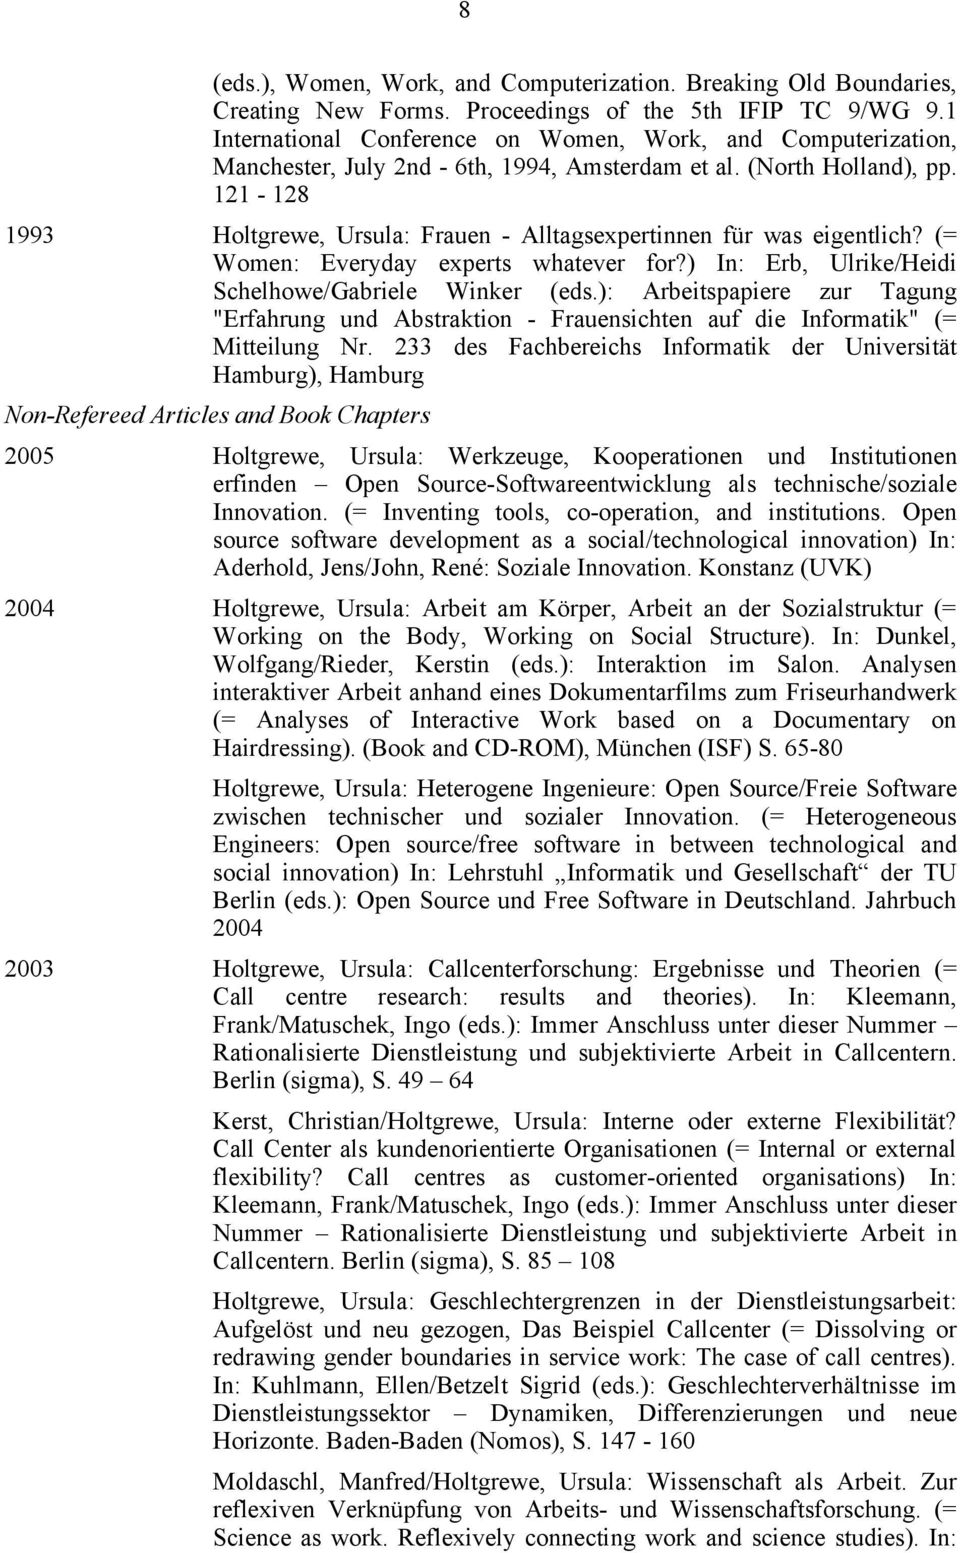 121-128 1993 Holtgrewe, Ursula: Frauen - Alltagsexpertinnen für was eigentlich? (= Women: Everyday experts whatever for?) In: Erb, Ulrike/Heidi Schelhowe/Gabriele Winker (eds.